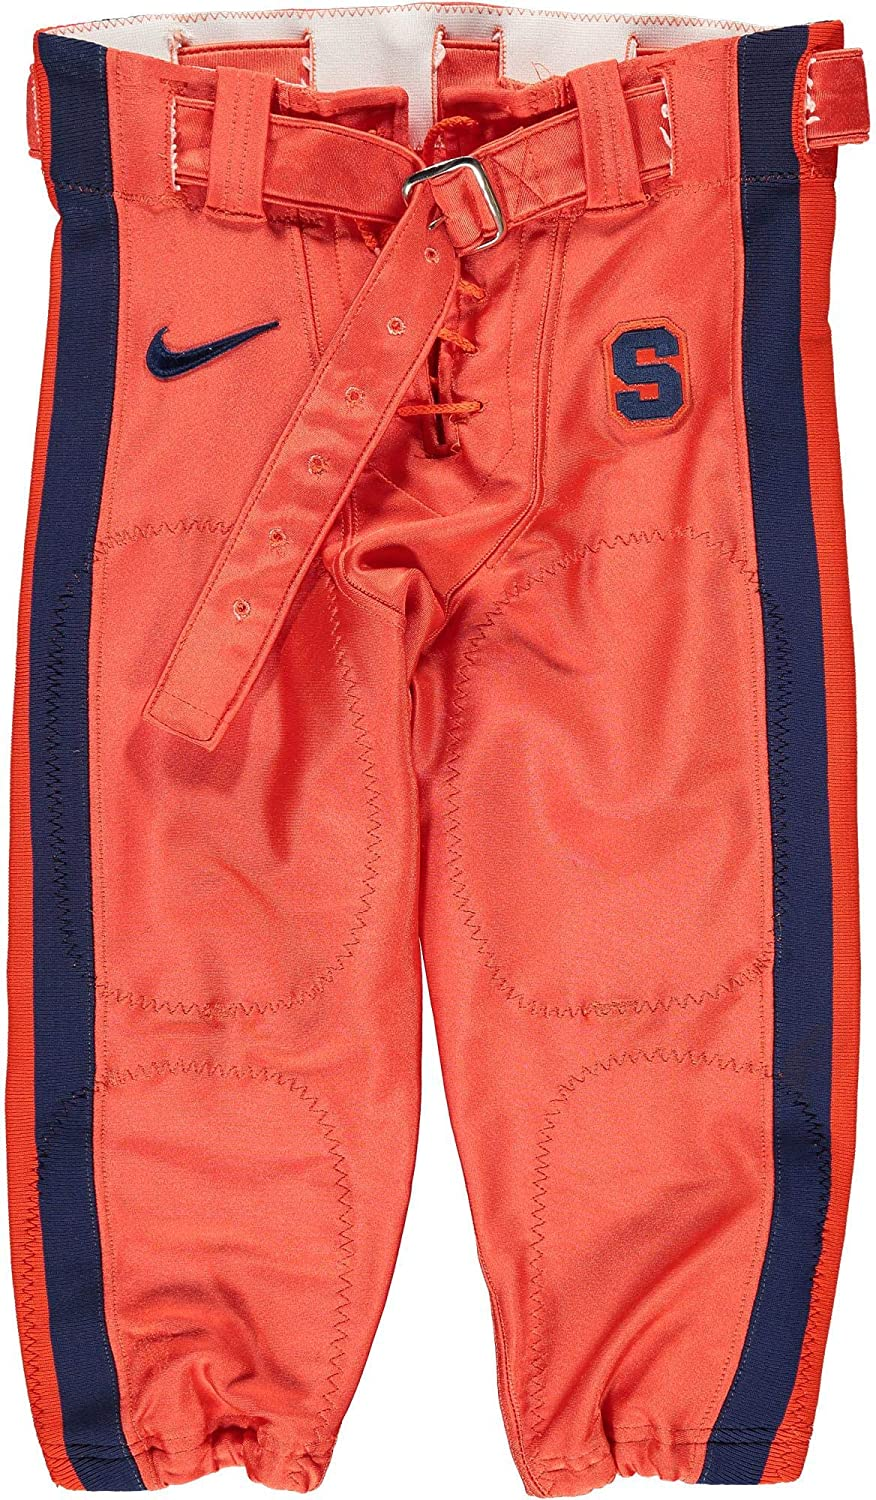 Syracuse University Game-Used #91 Pants from the 2006 NCAA Season - Fanatics Authentic Certified - Other College Game Used Items